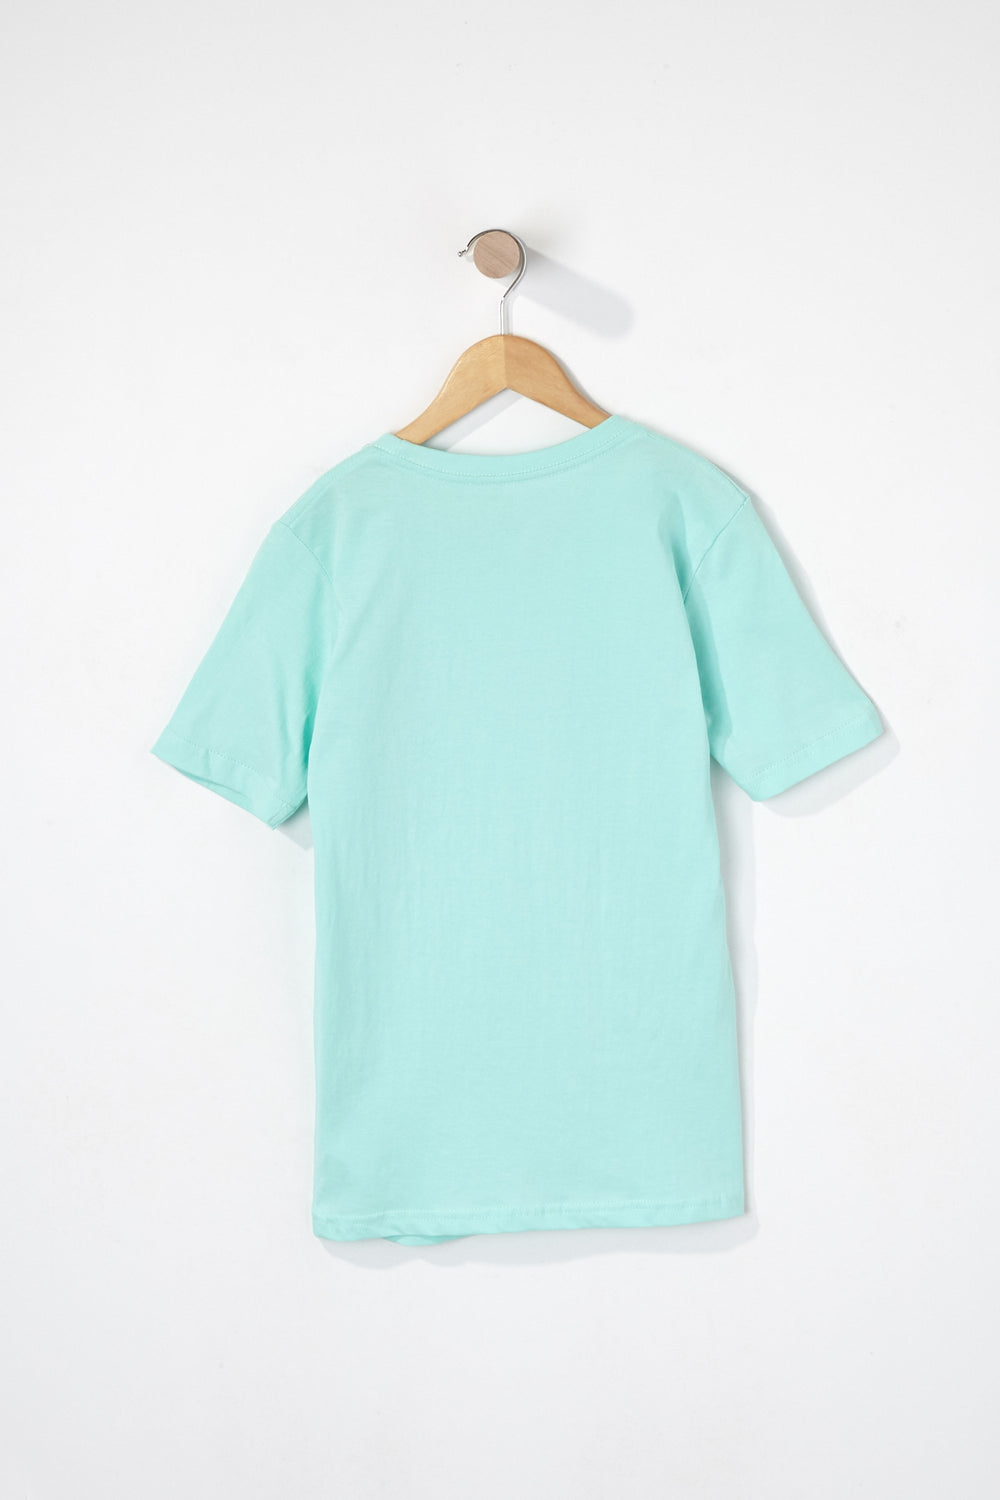 Zoo York Boys Neon Logo T-Shirt Zoo York Boys Neon Logo T-Shirt